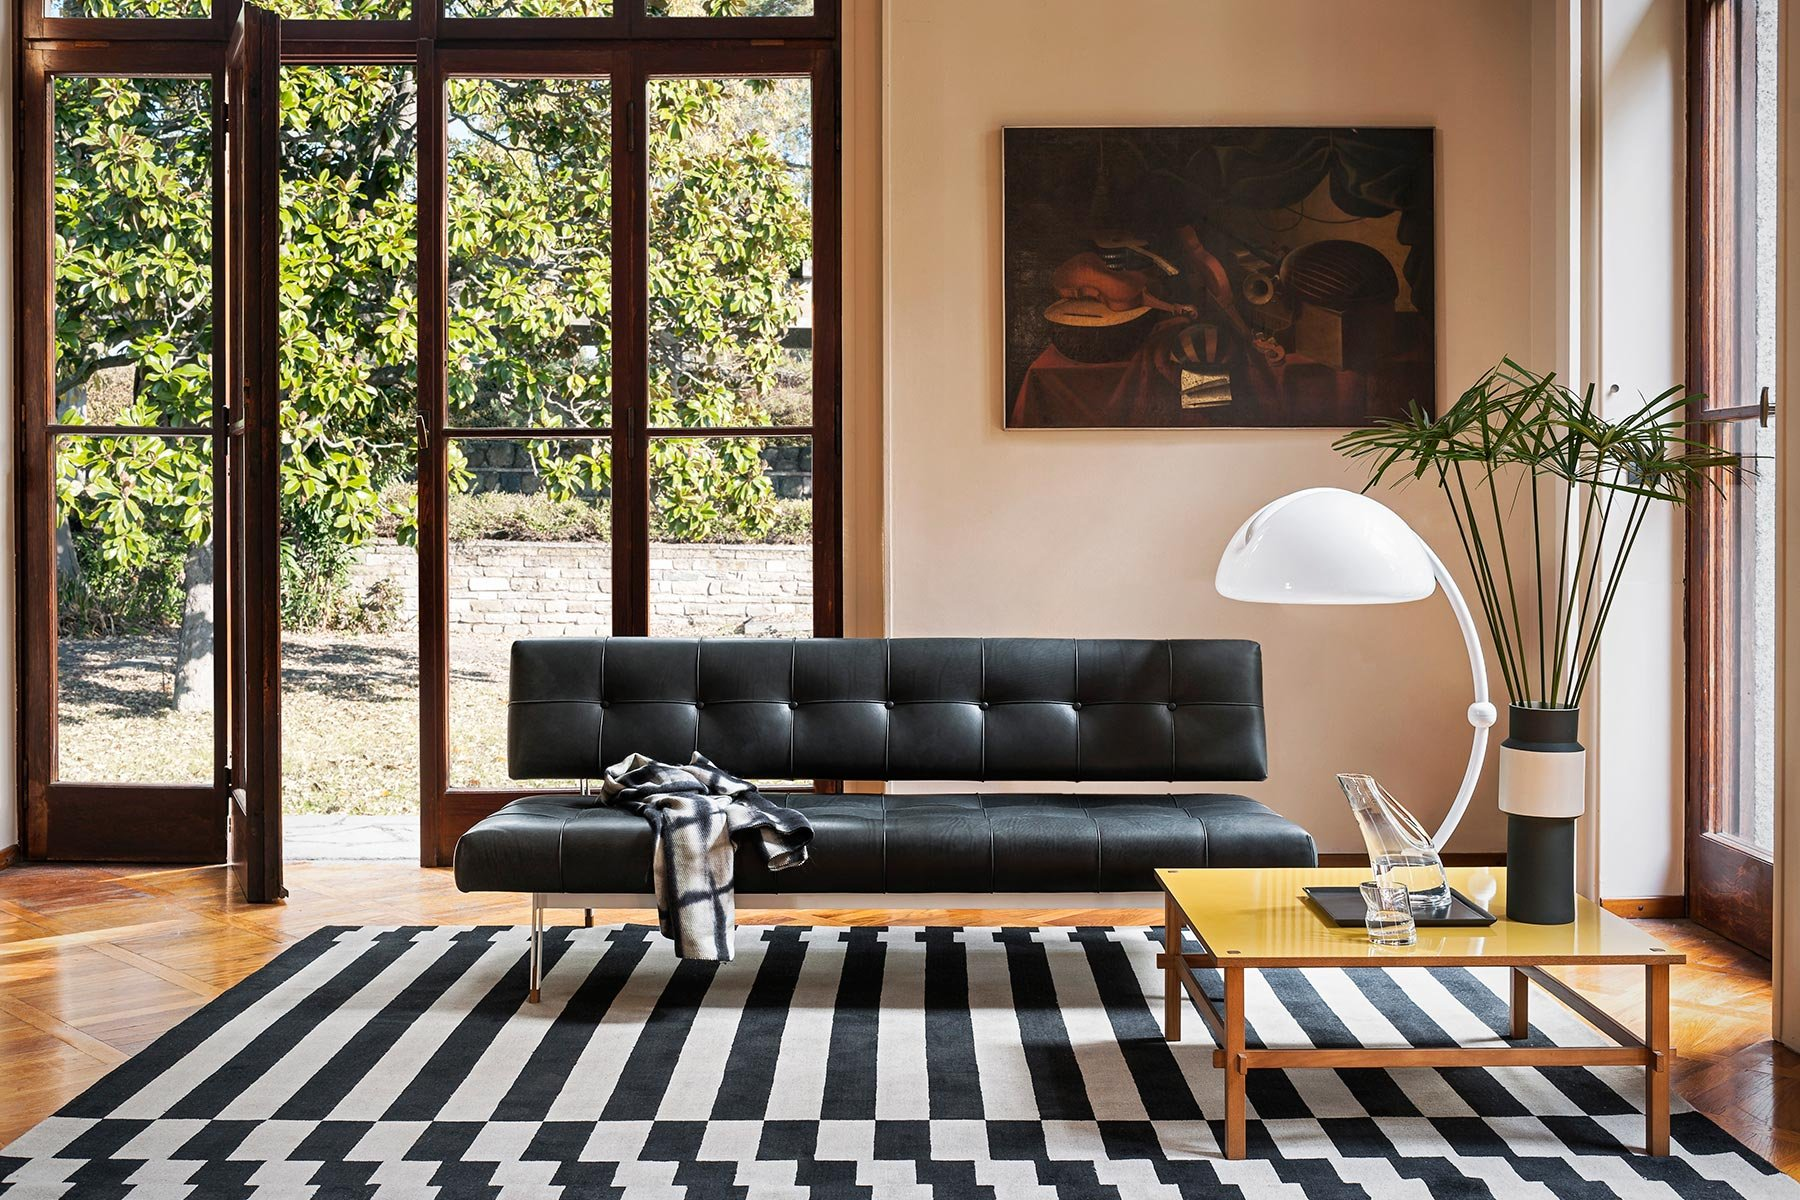 Gio Wood Coffee Table from Tacchini, designed by Gianfranco Frattini